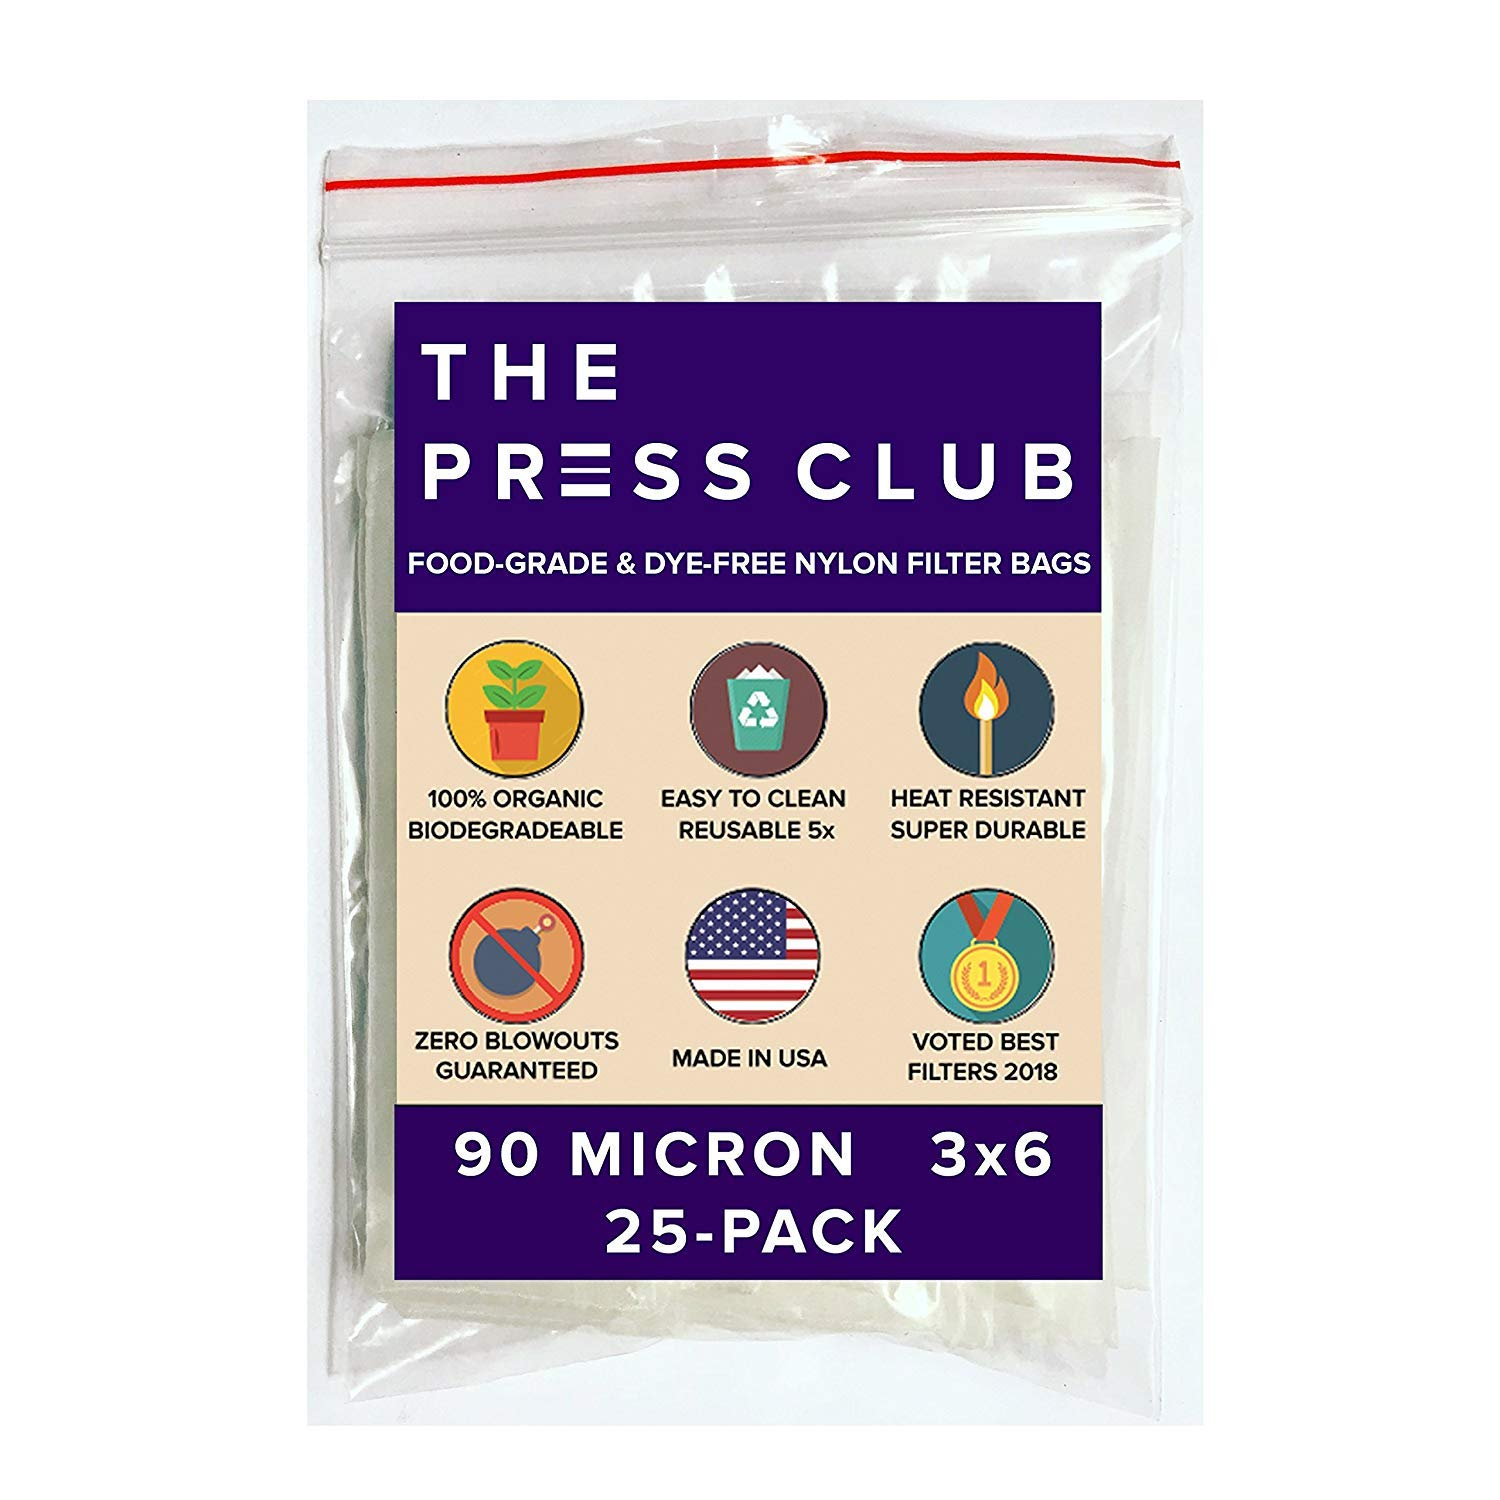 90 Micron | Premium Nylon Tea Filter Press Screen Bags | 3'' x 6'' | 25 Pack | Zero Blowout Guarantee | All Micron & Sizes Available by The Press Club